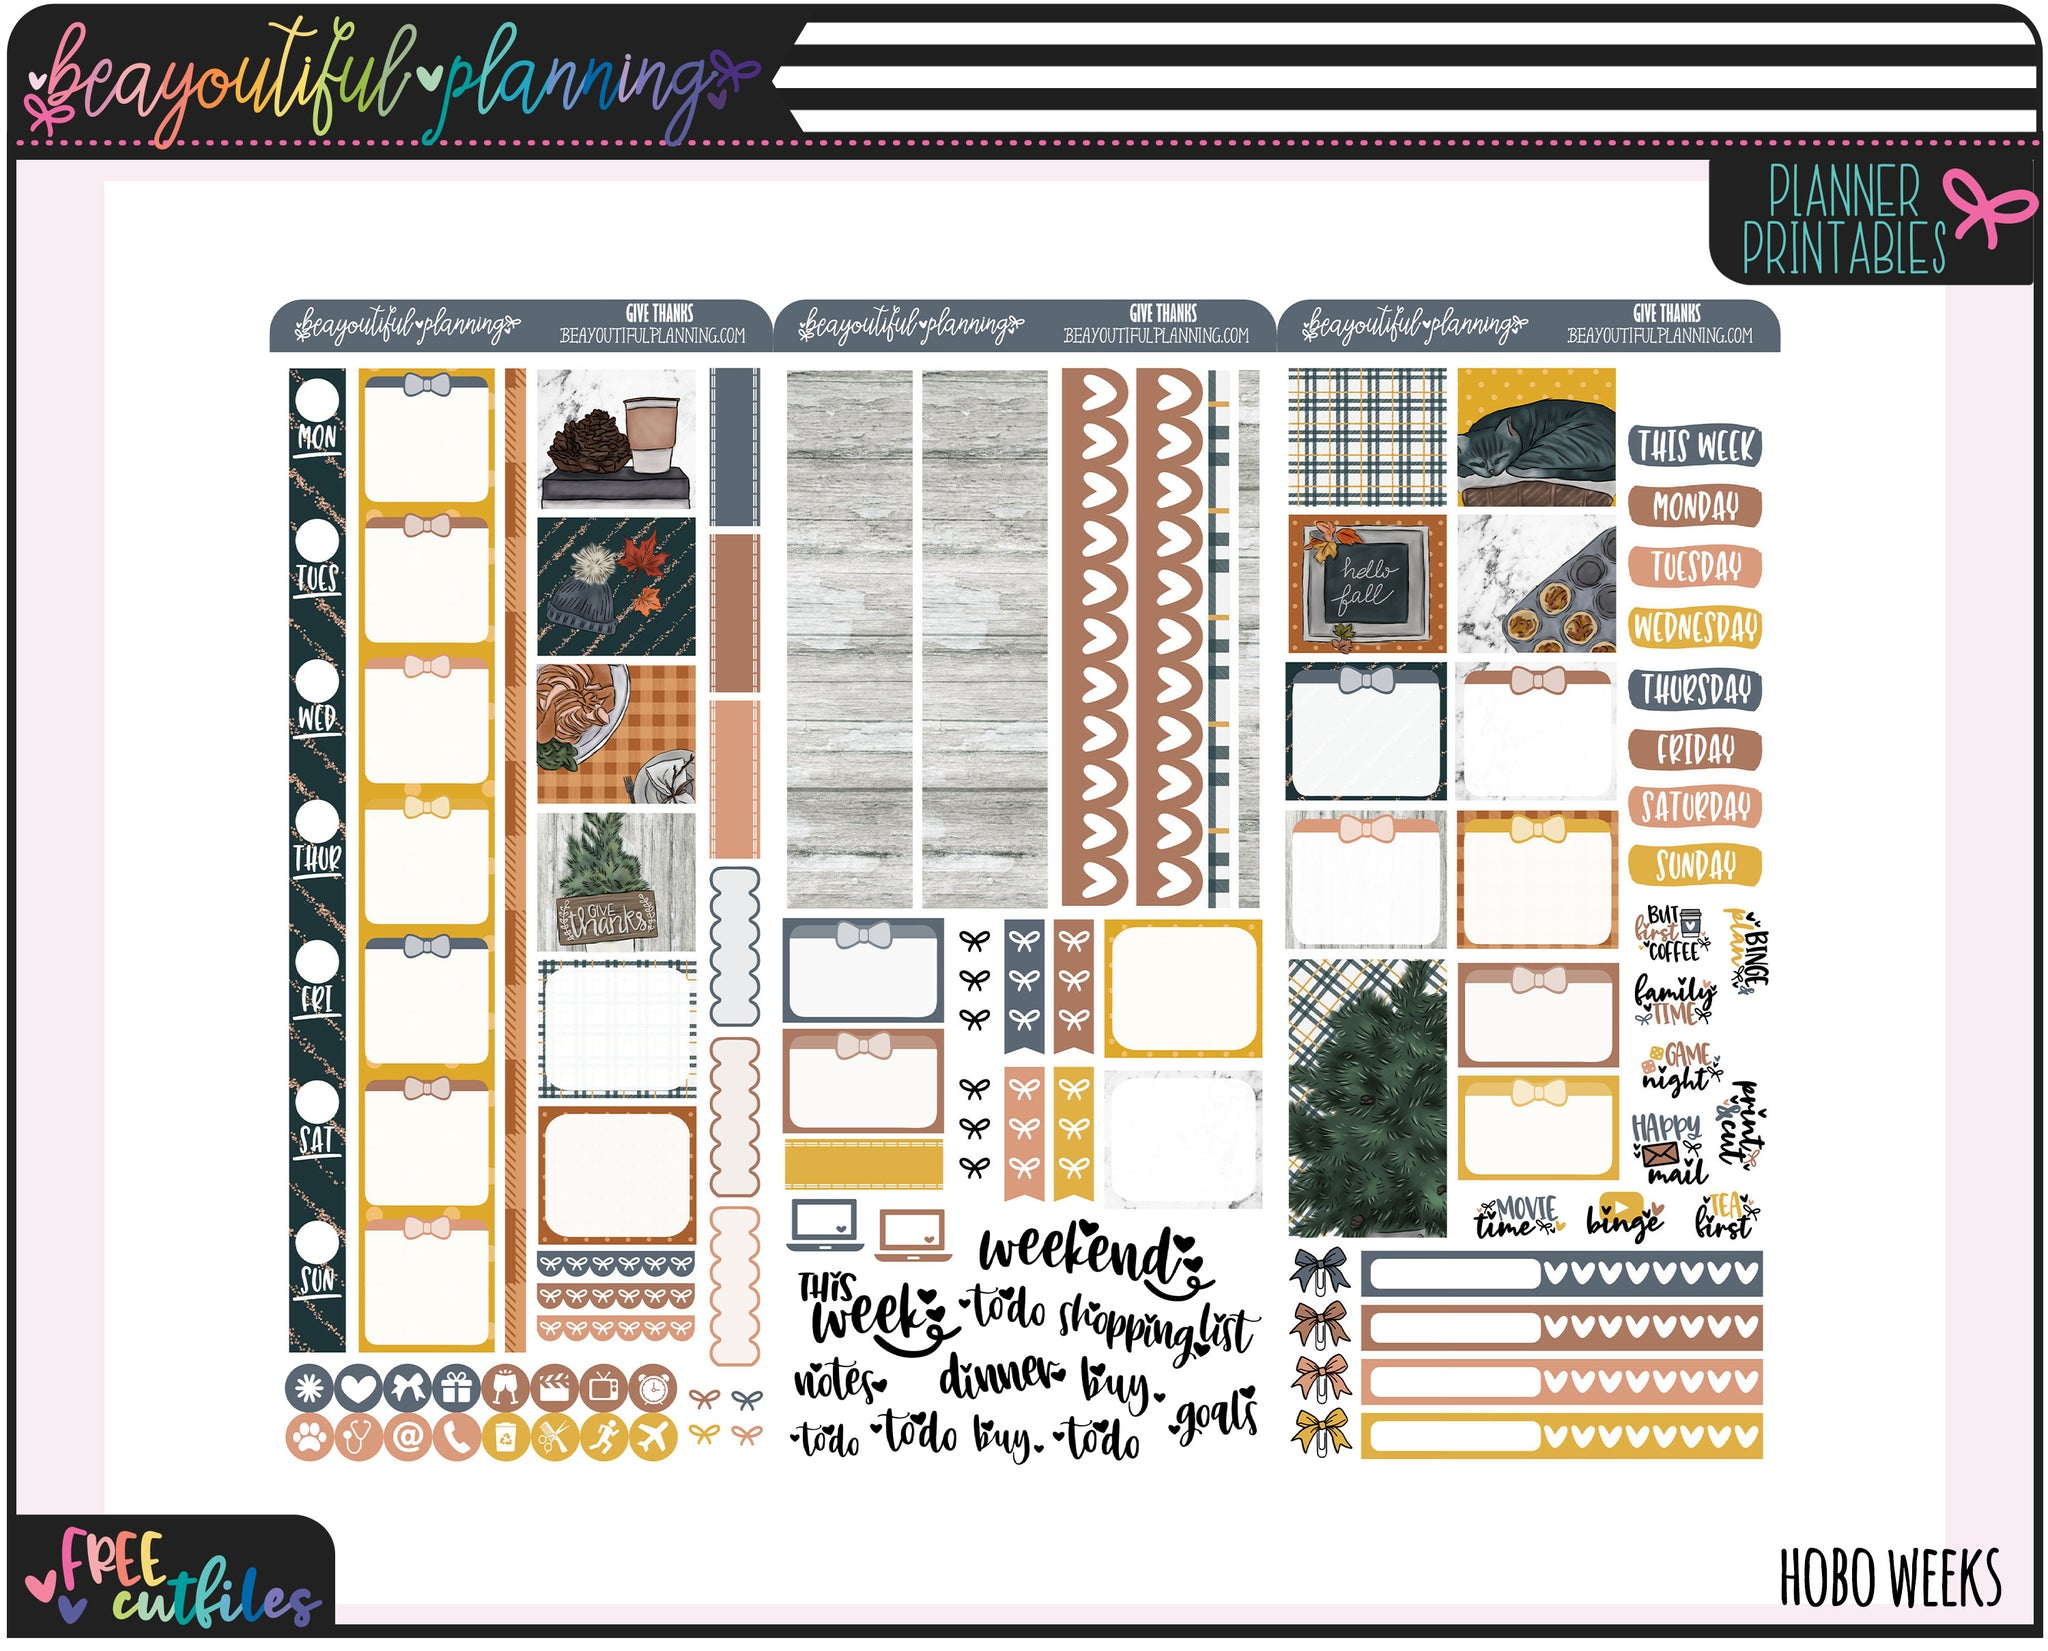 Give Thanks Hobo Weeks Printable